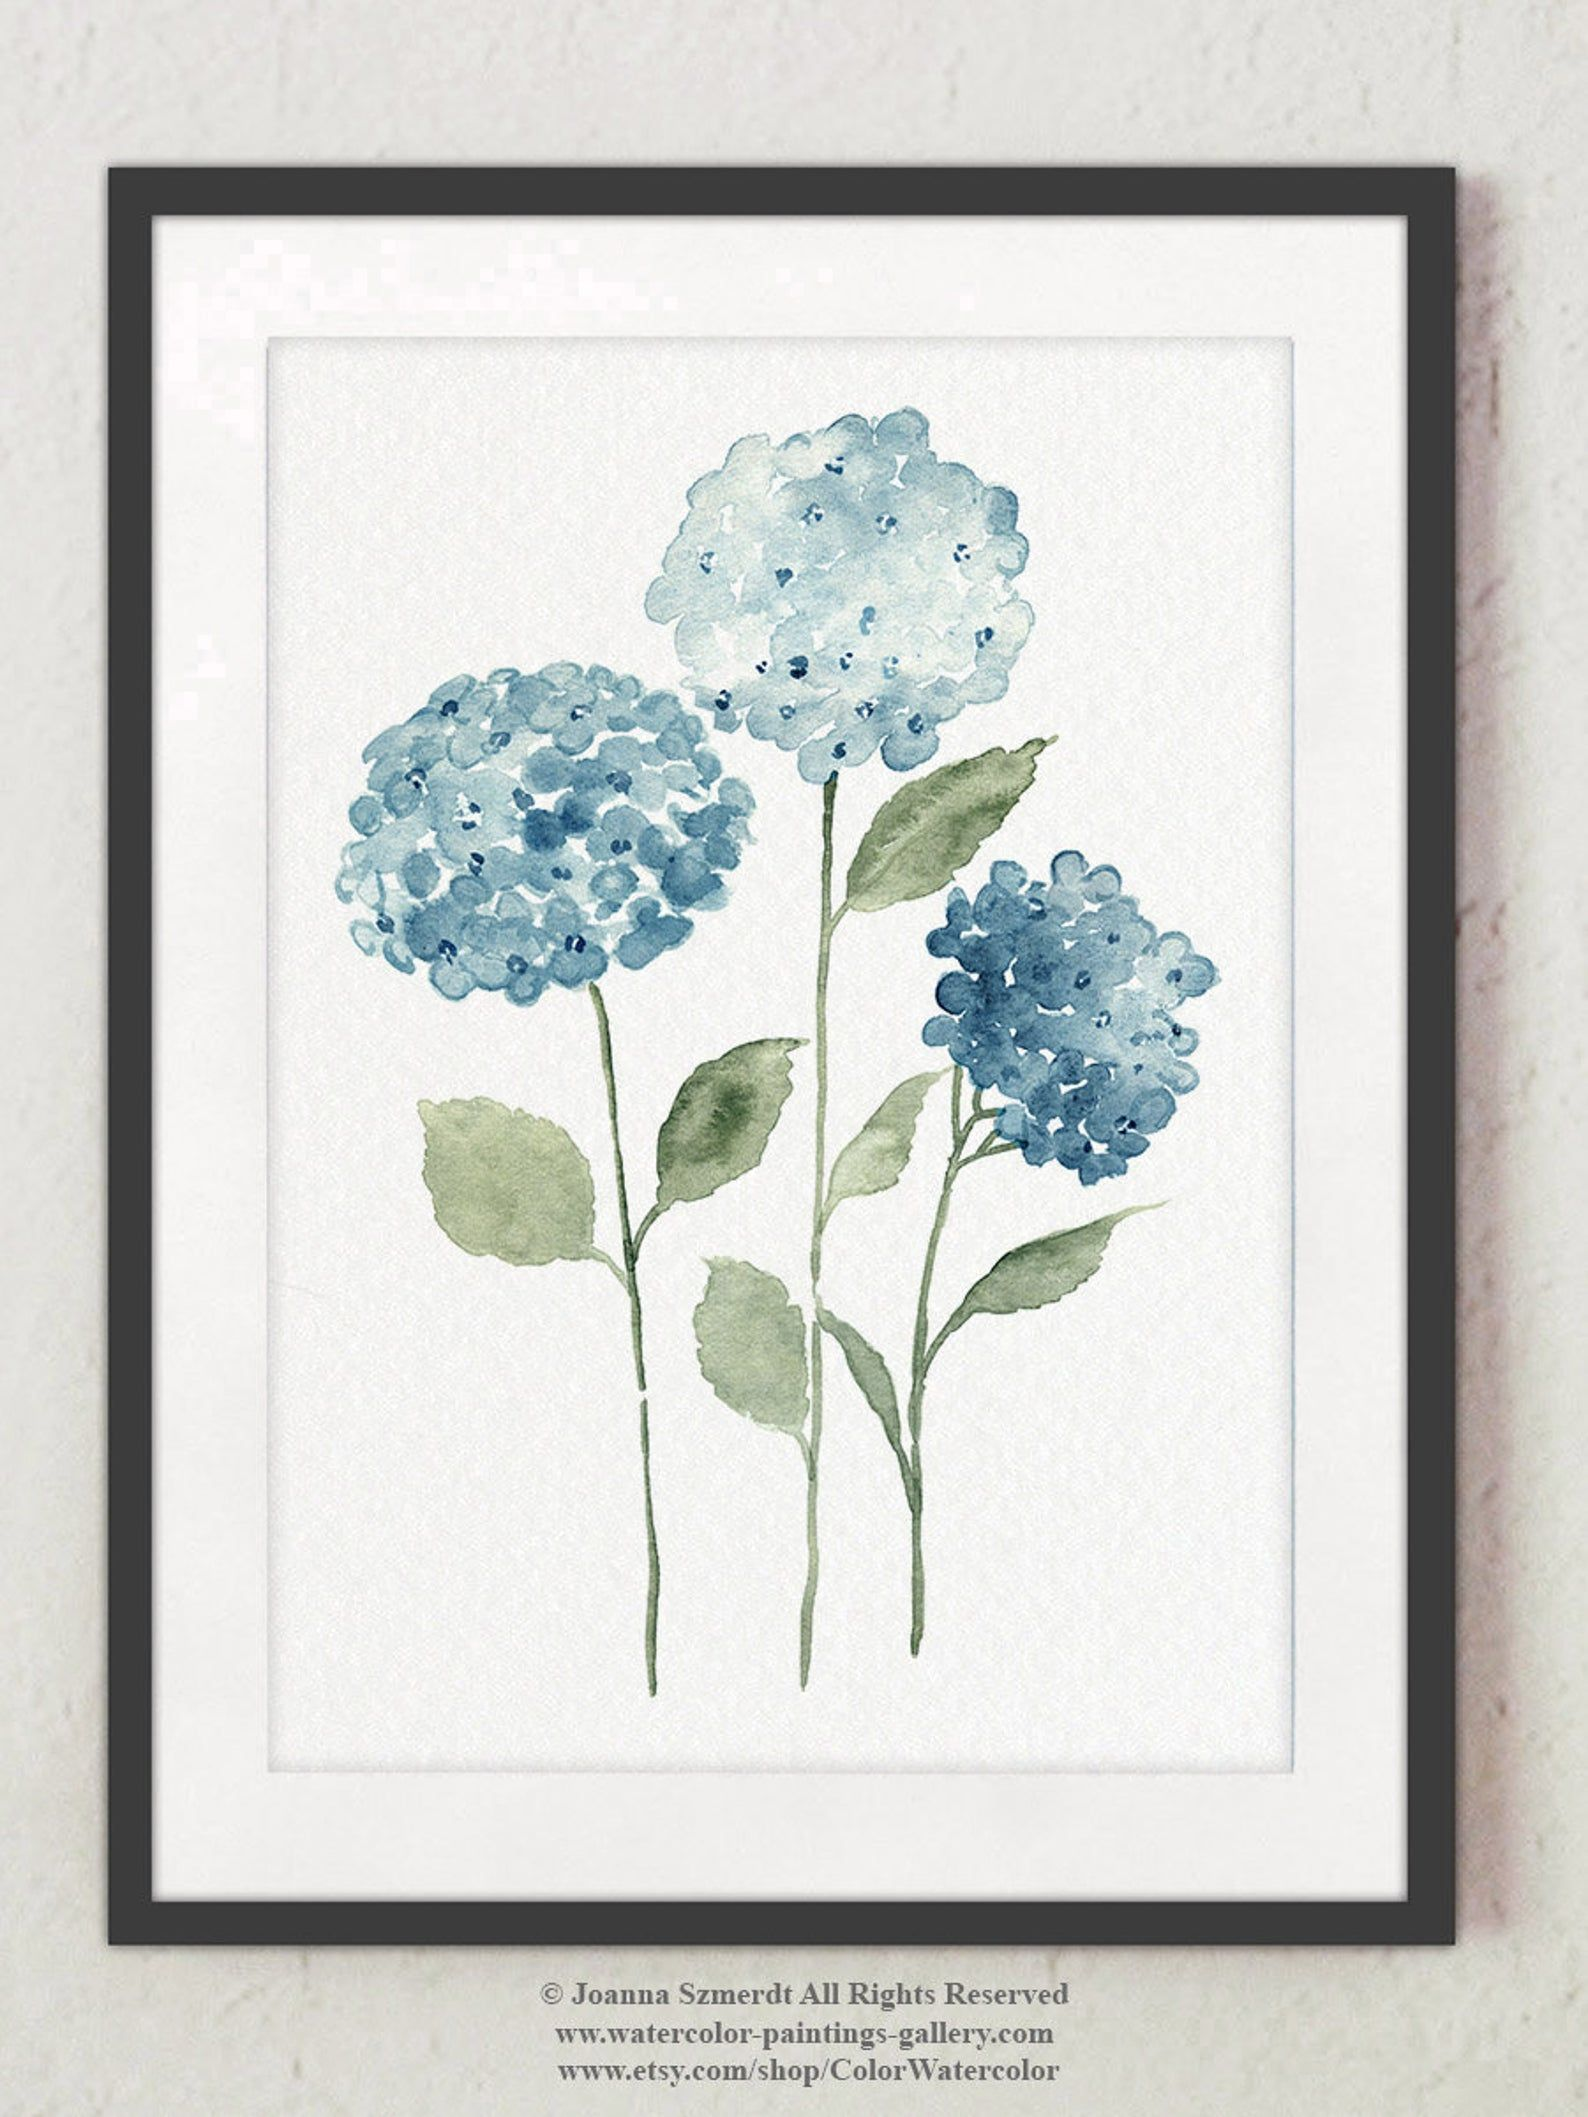 Blue Hydrangea Flowers Set 4 Watercolour Drawings Colorful Botanical Motive Modern Bedroom Decoration Scandinavian Nature Style Home Art In 2020 With Images Watercolor Flowers Paintings Hydrangeas Art Flower Painting